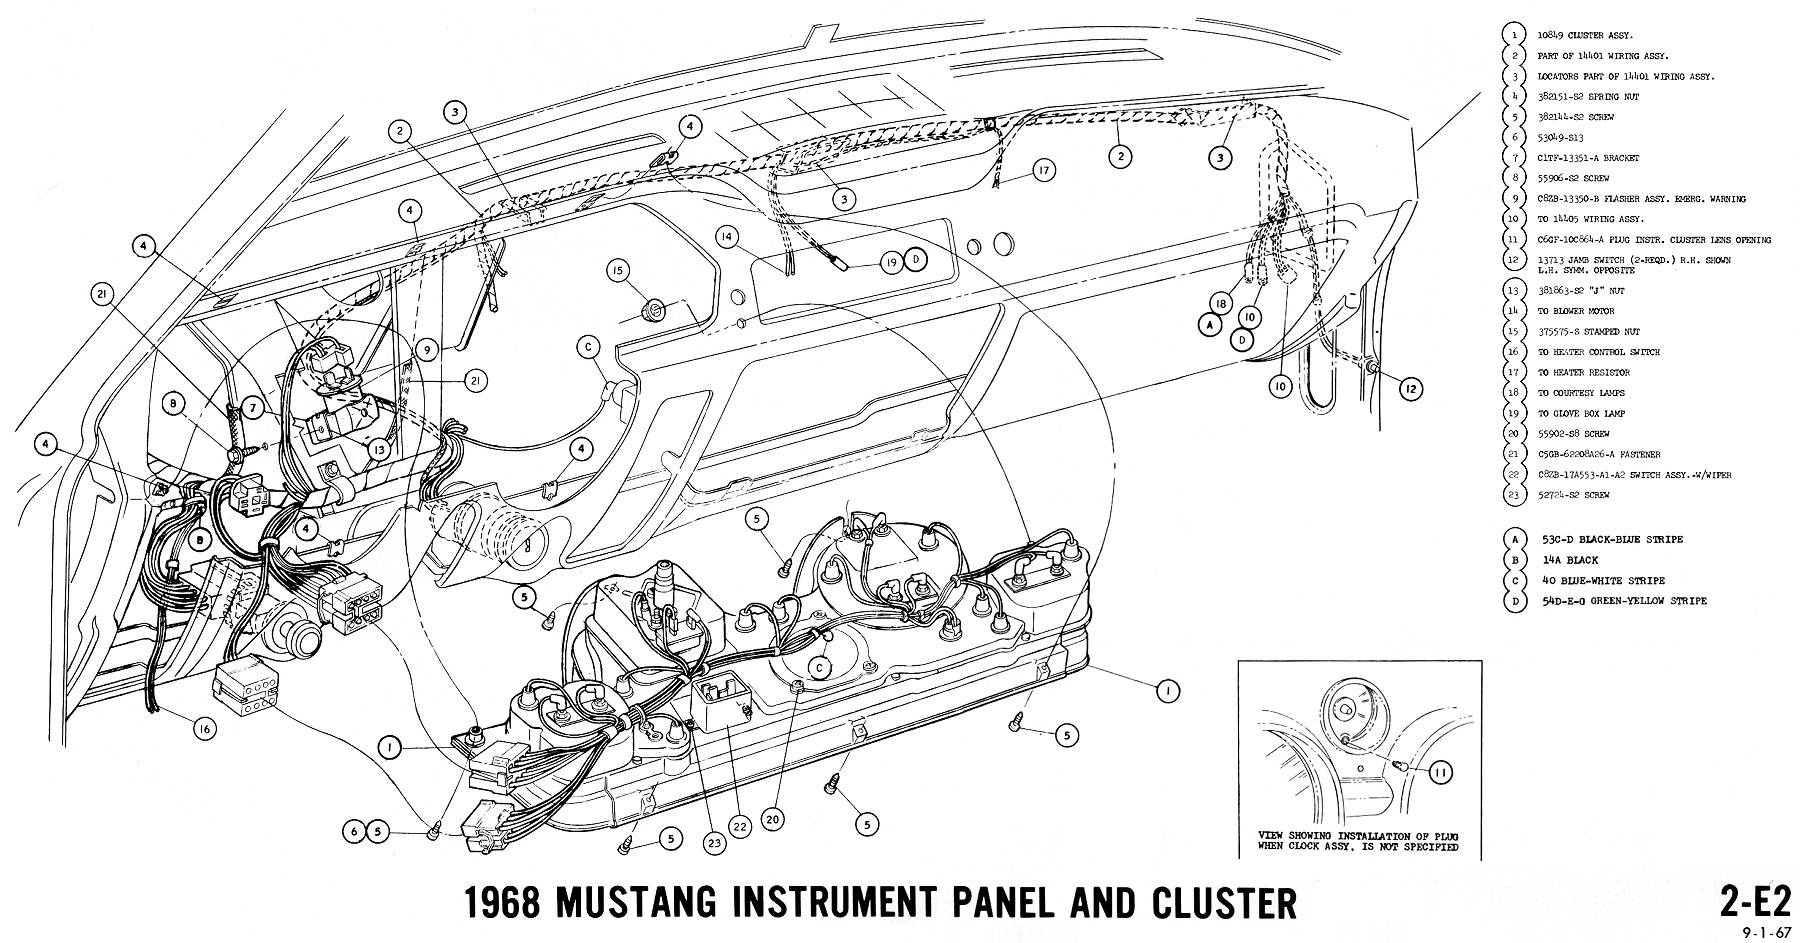 1968 mustang dash cluster wiring diagram electrical diagrams 67 mustang  tach wiring diagram 1968 mustang instrument